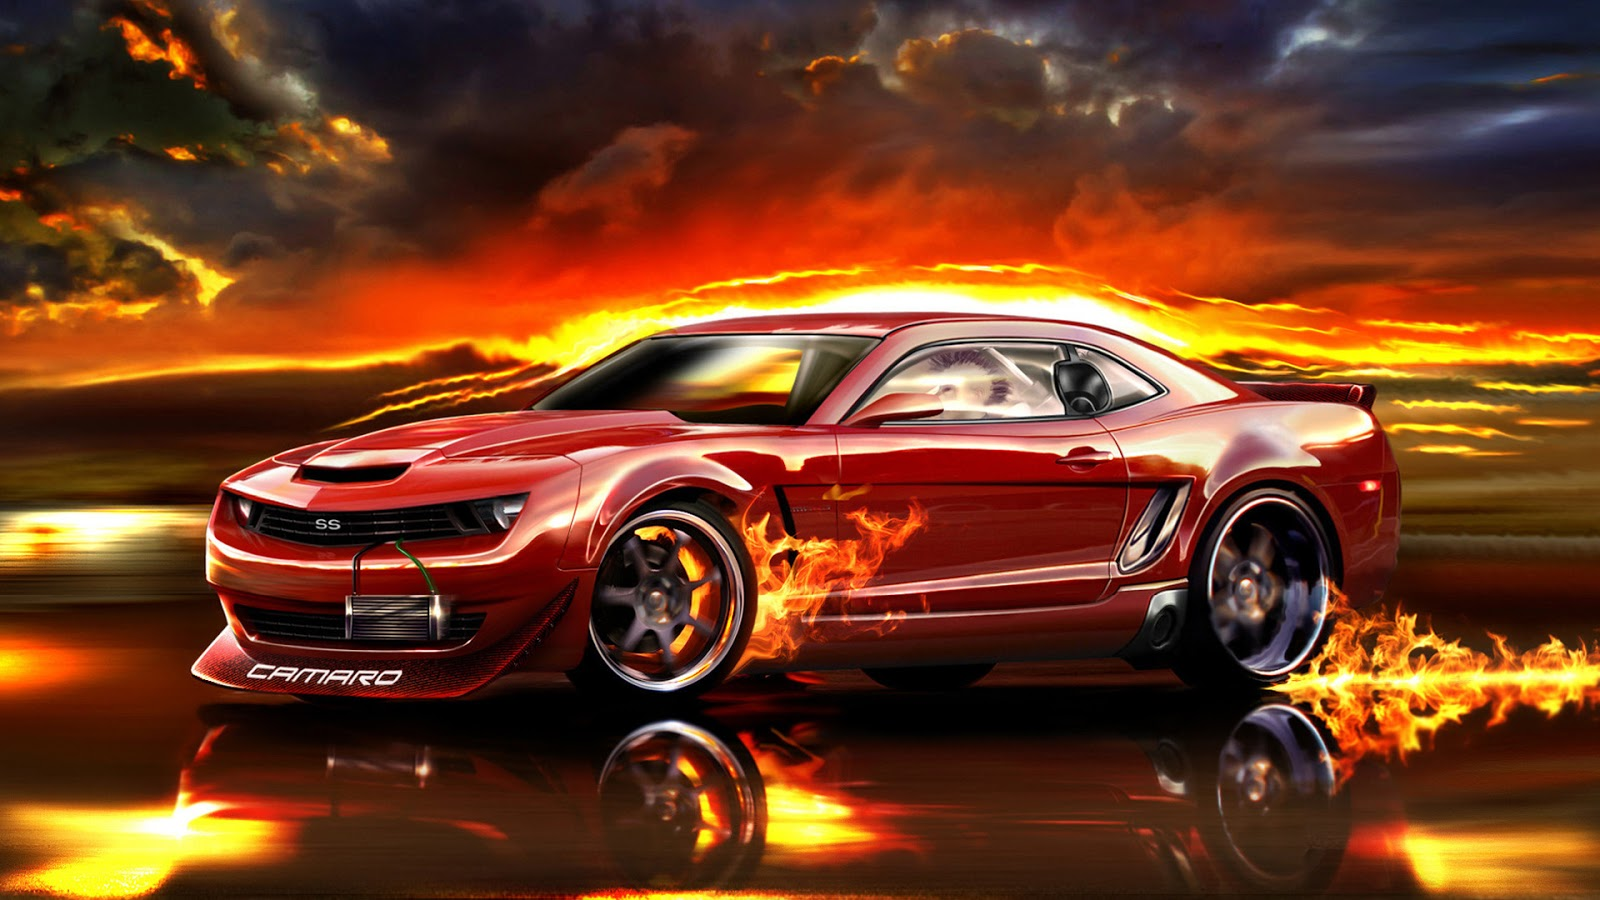 Chevrolet Camaro with Fire